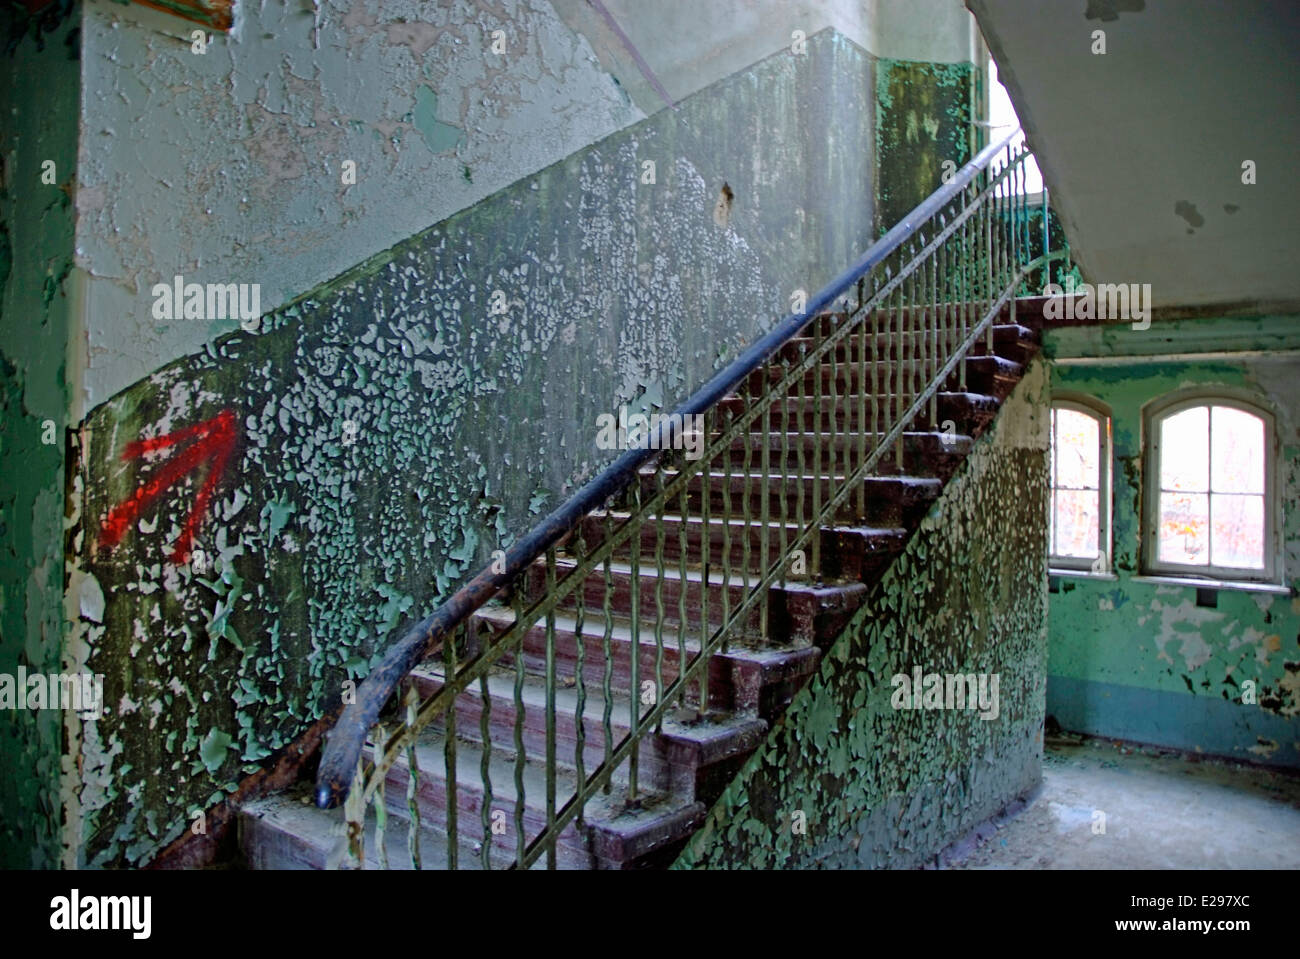 Staircase to the first floor - Stock Image